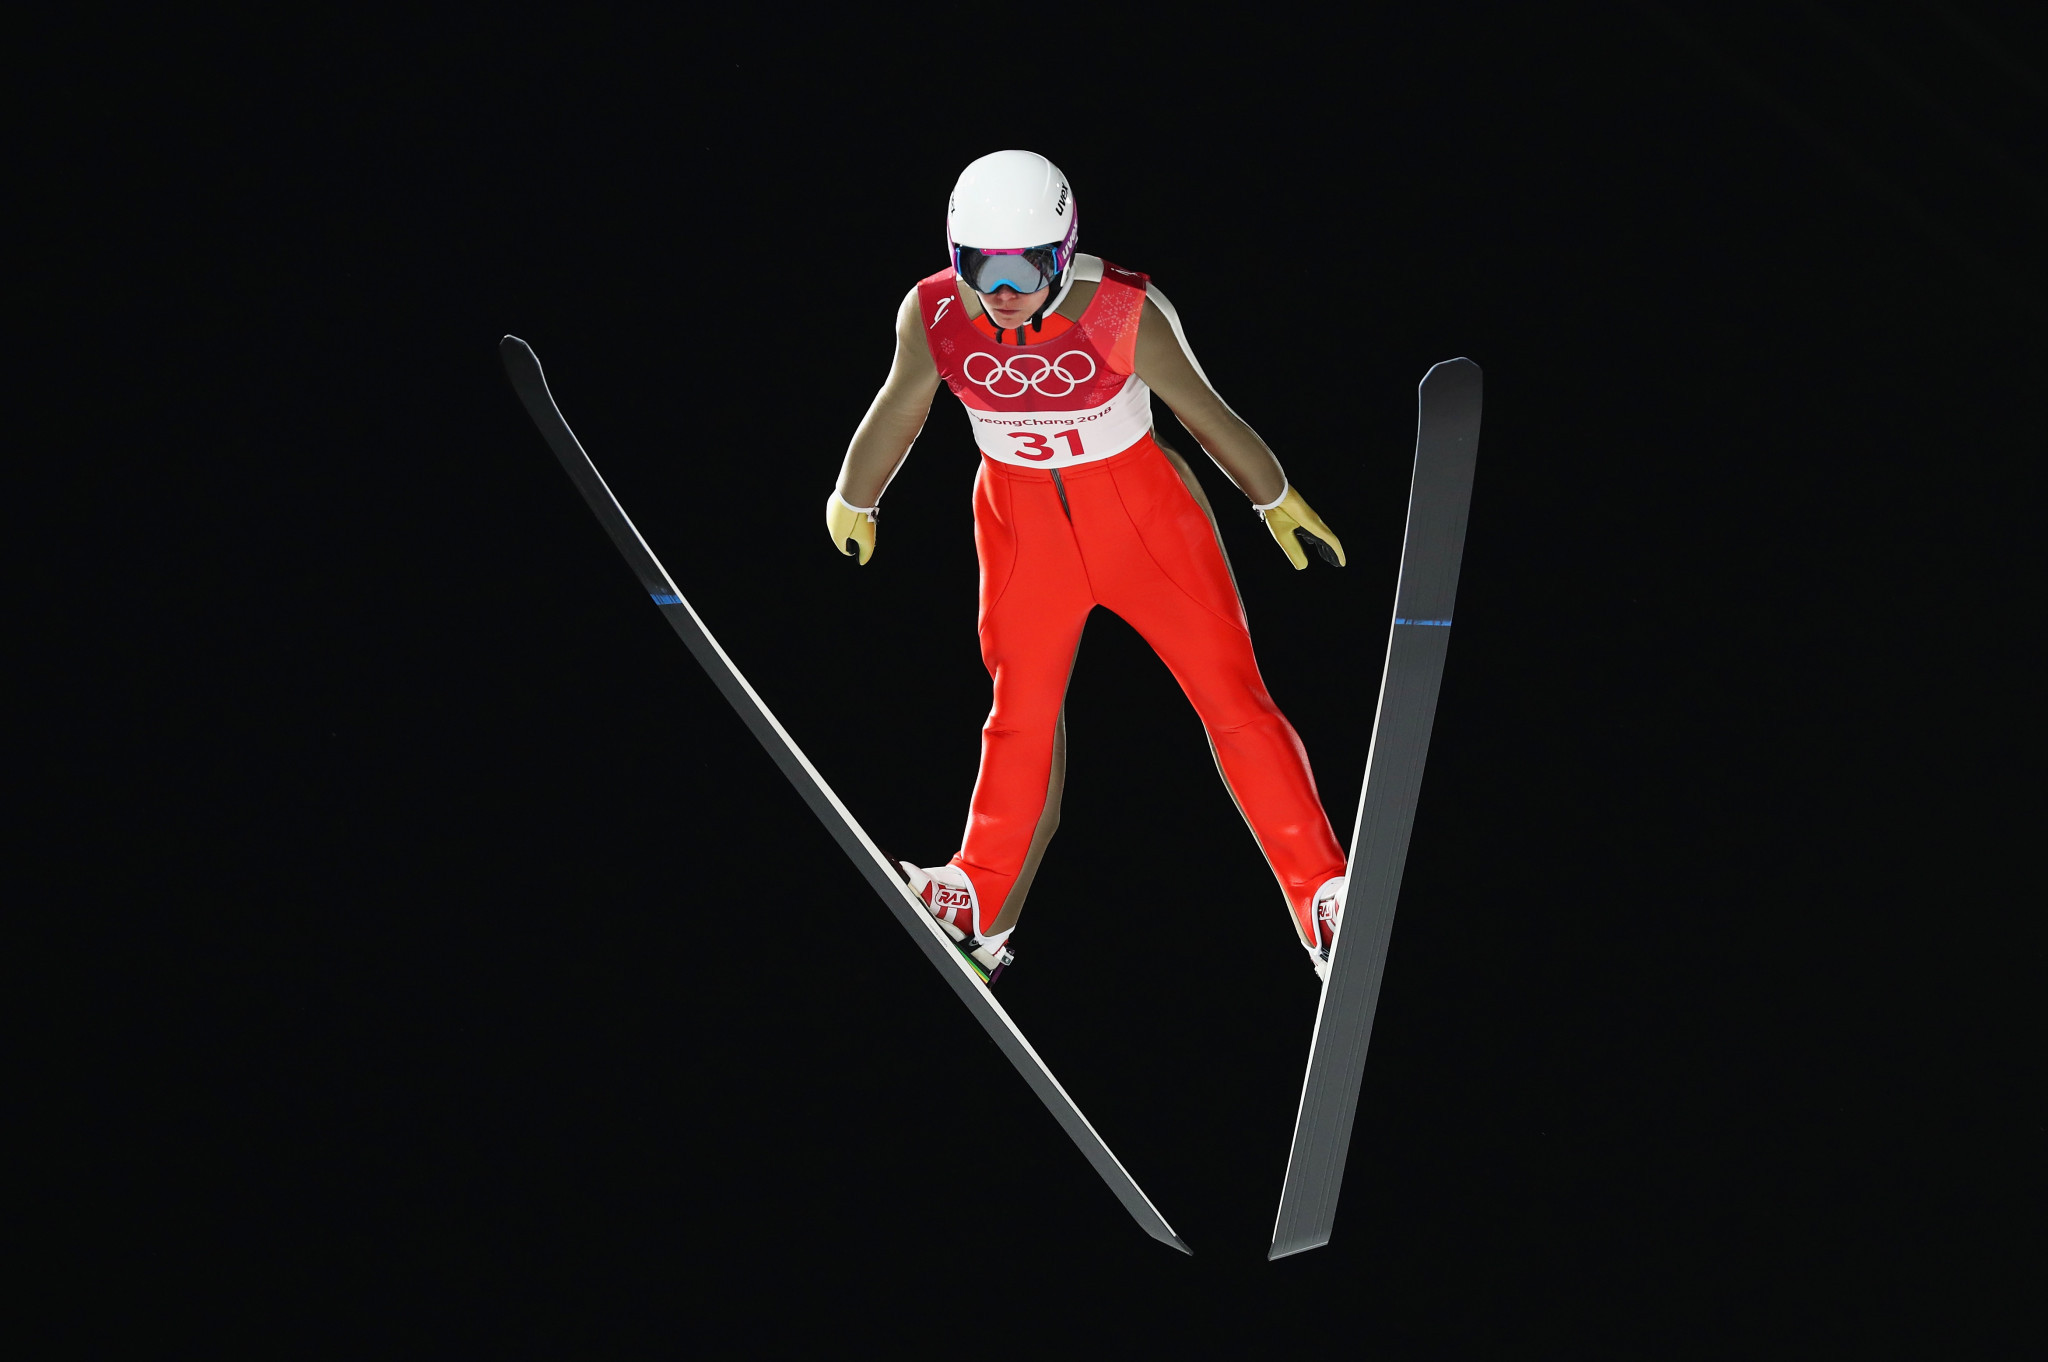 Irina Avvakumova produced the best performance by a Russian ski jumper at the Winter Olympic Games in Pyeongchang, finishing fourth in the women's event ©Getty Images